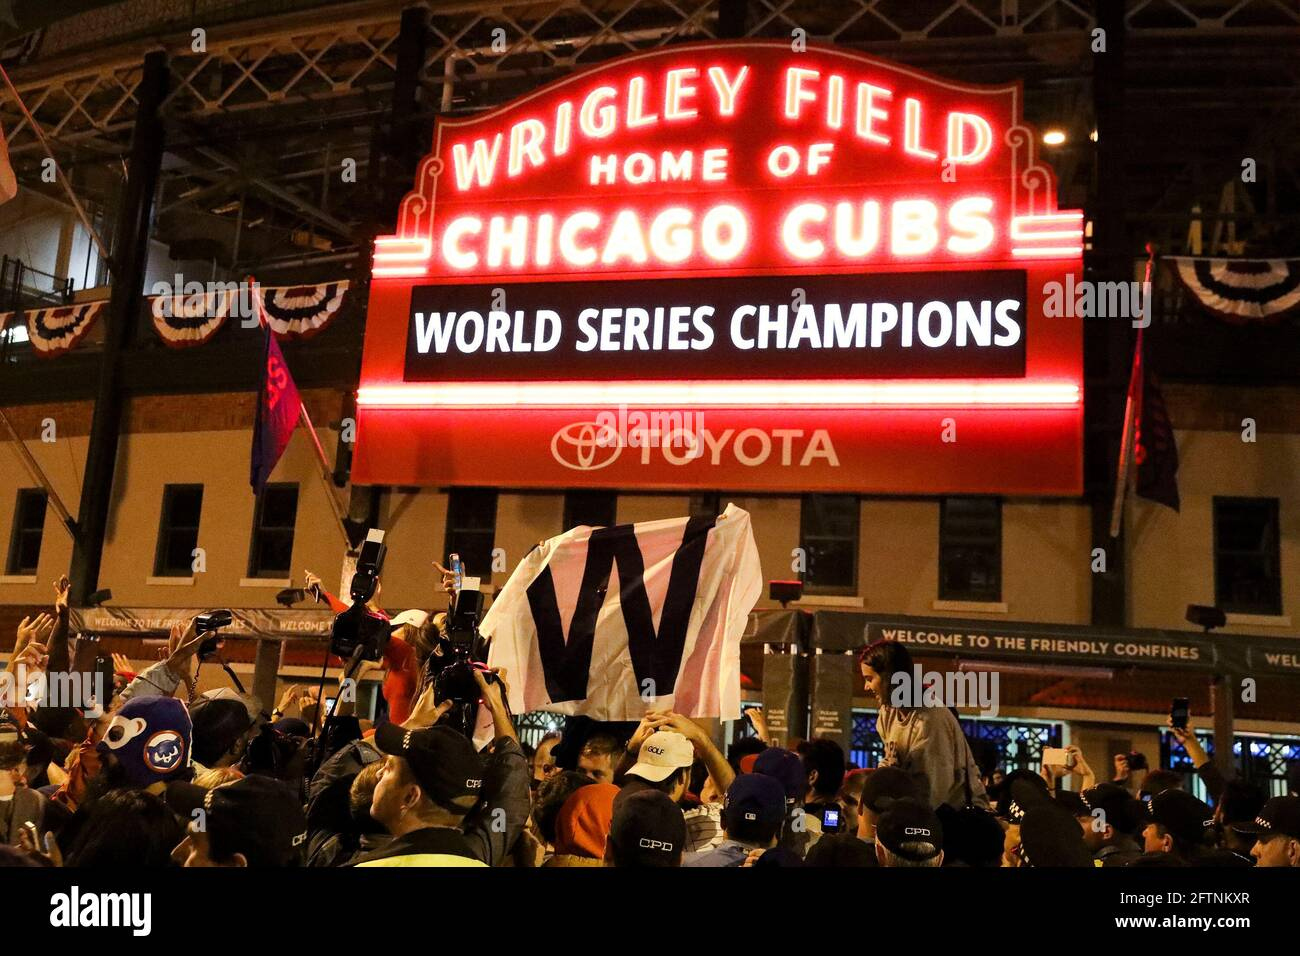 Chicago, USA. 02nd Nov, 2016. Fans cheer outside Wrigley Field after the Chicago Cubs defeated the Cleveland Indians in Game 7 of the World Series on Nov. 2, 2016, in Chicago. (Photo by Armando L. Sanchez/Chicago Tribune/TNS/Sipa USA) Credit: Sipa USA/Alamy Live News Stock Photo